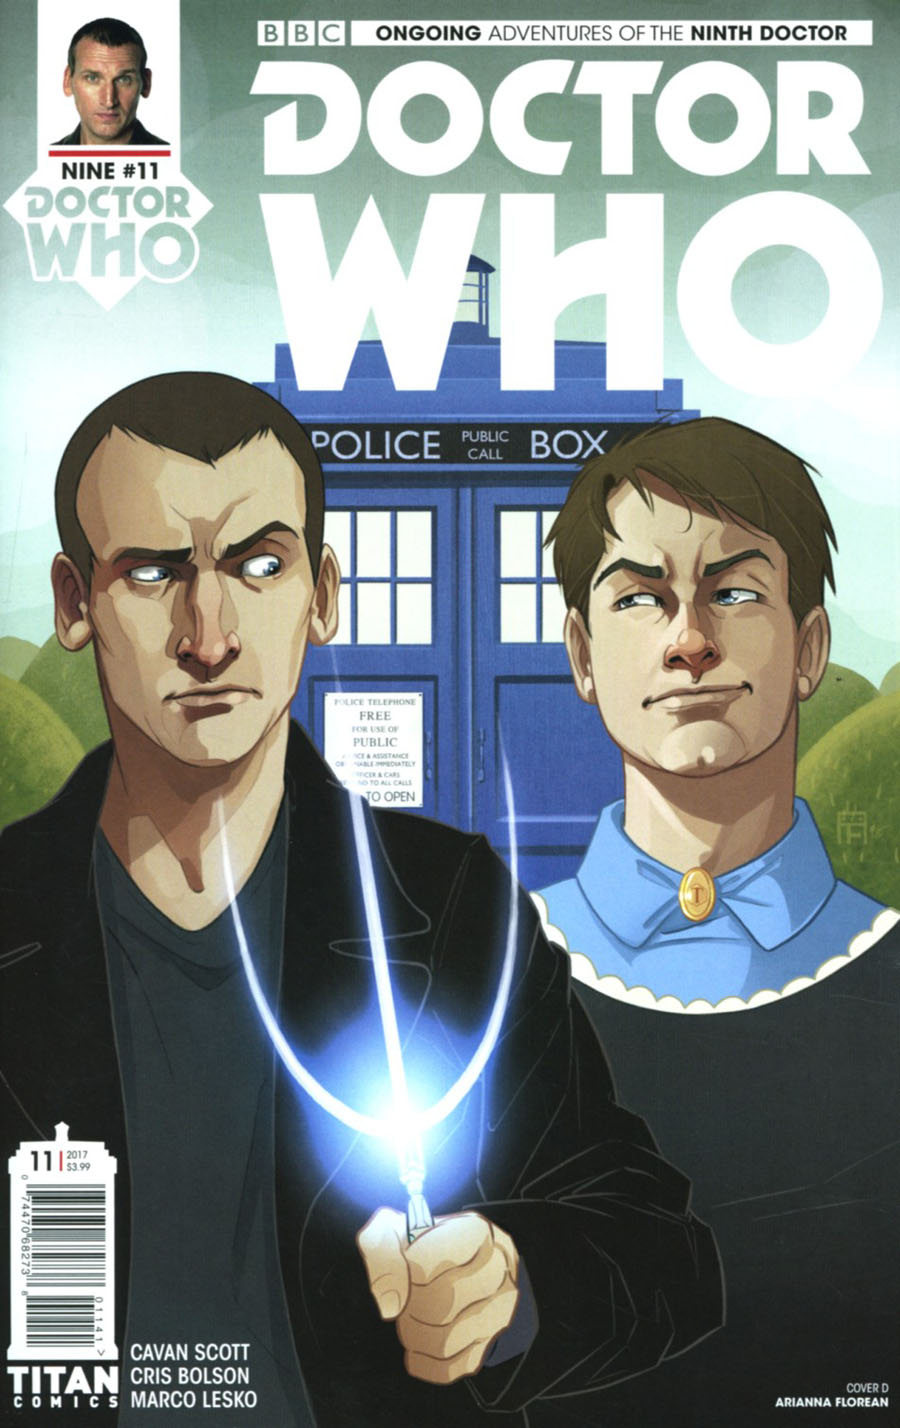 Doctor Who 9th Doctor Vol 2 #11 Cover D Variant Arianna Florean Cover